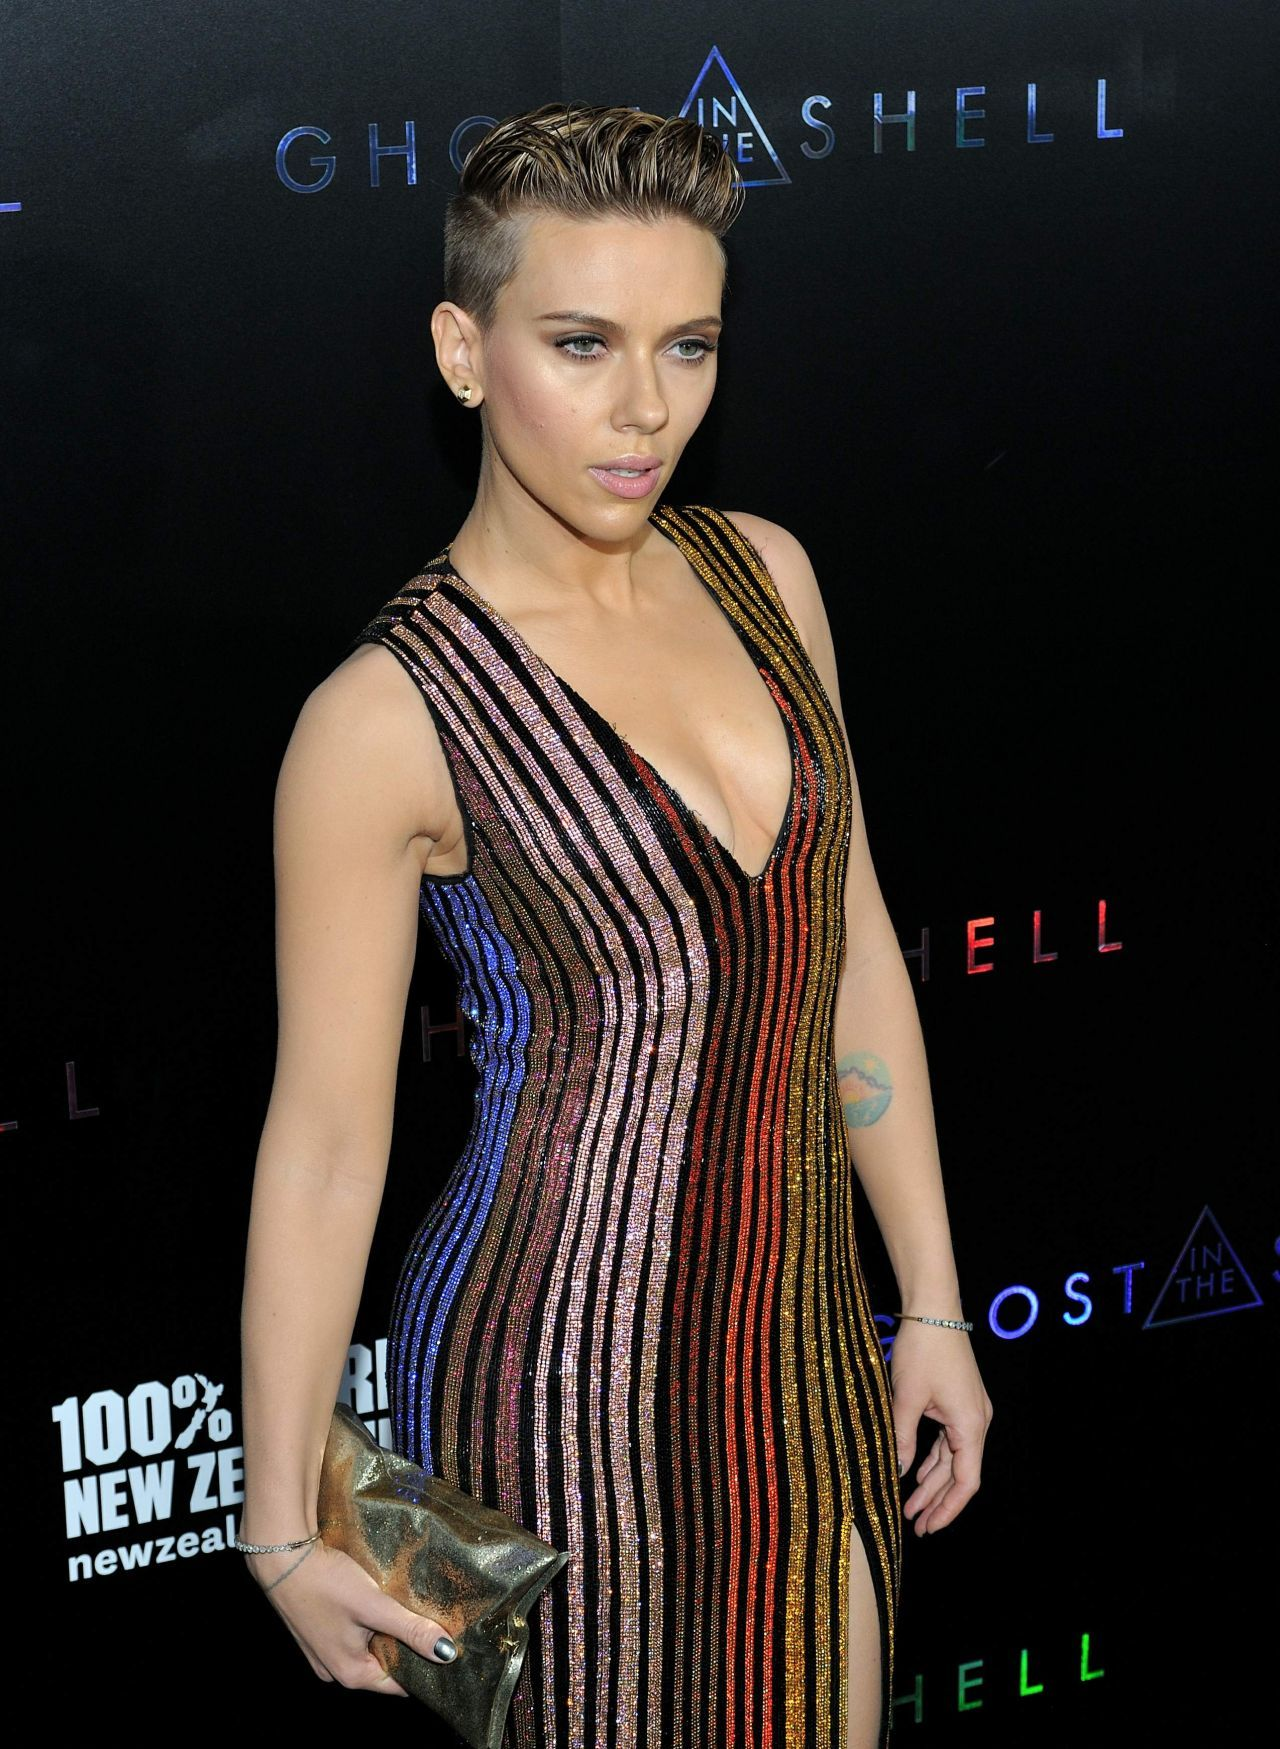 Scarlett Johansson At Ghost In The Shell Premiere In New York City Check More At Https Scarlett Johansson Hairstyle Scarlett Johansson Scarlett Johansson Ghost